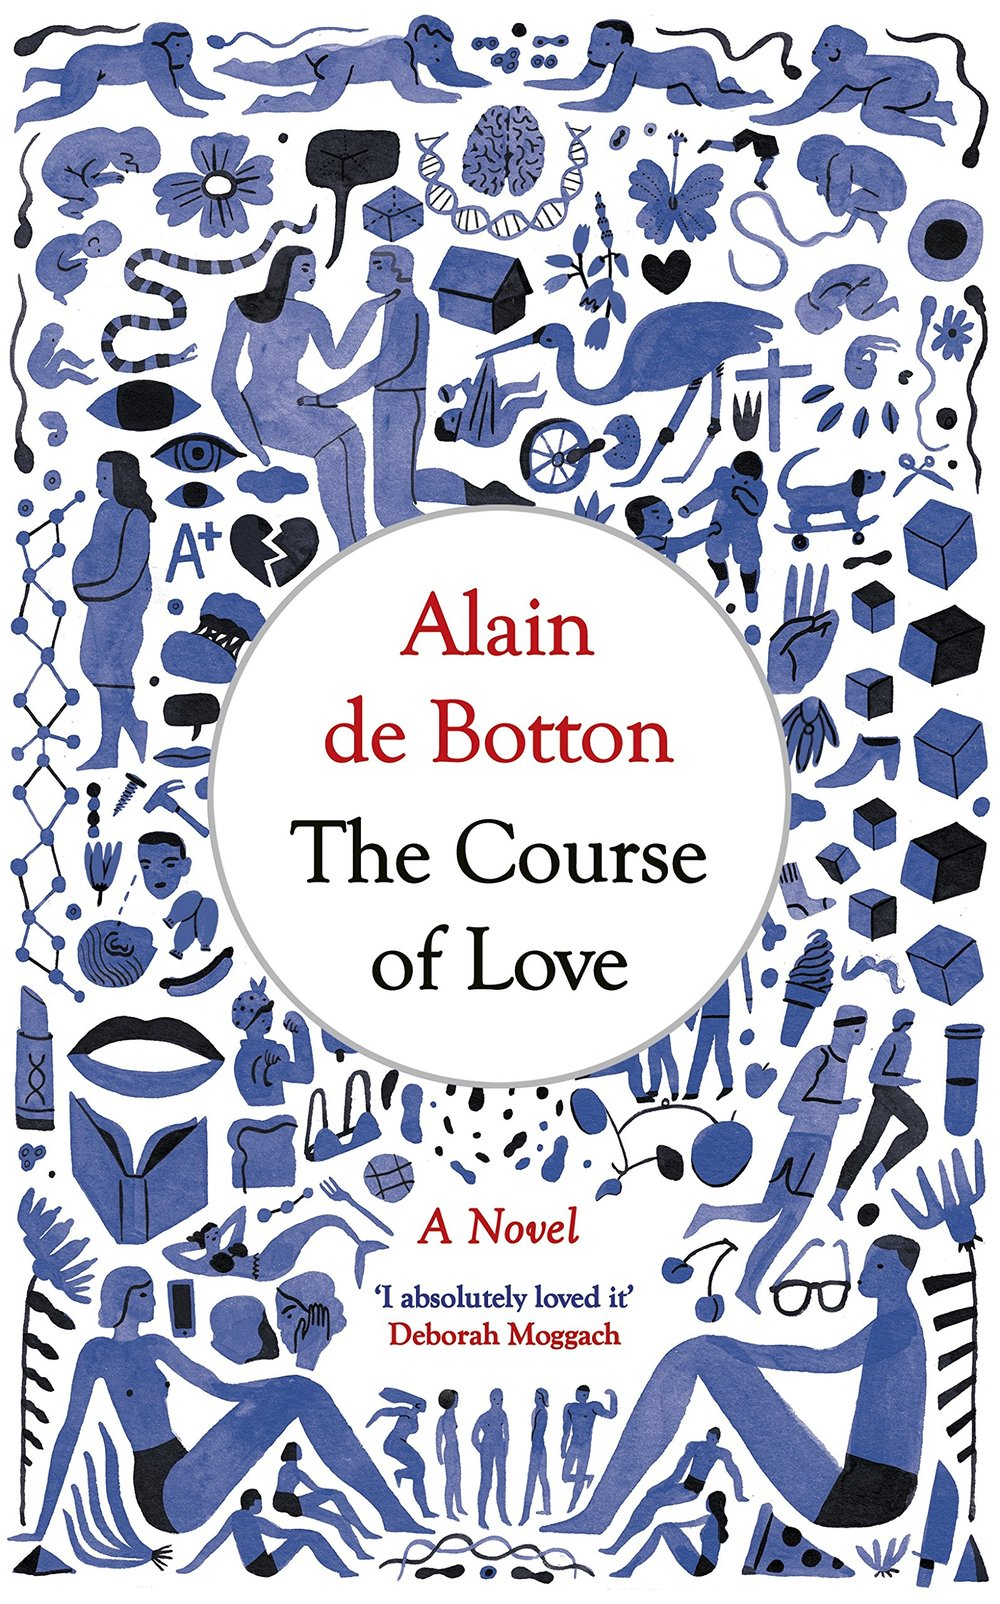 2. The Course of Love - Alain de Botton - De Botton's novel tells the story of a married couple who become irritable and contentious after their 'honeymoon' stage has ended. The Course of Love shows that life after falling in love isn't as simple as 'happy ever after'. Vividly realistic, having fallen deeply in love, the couple